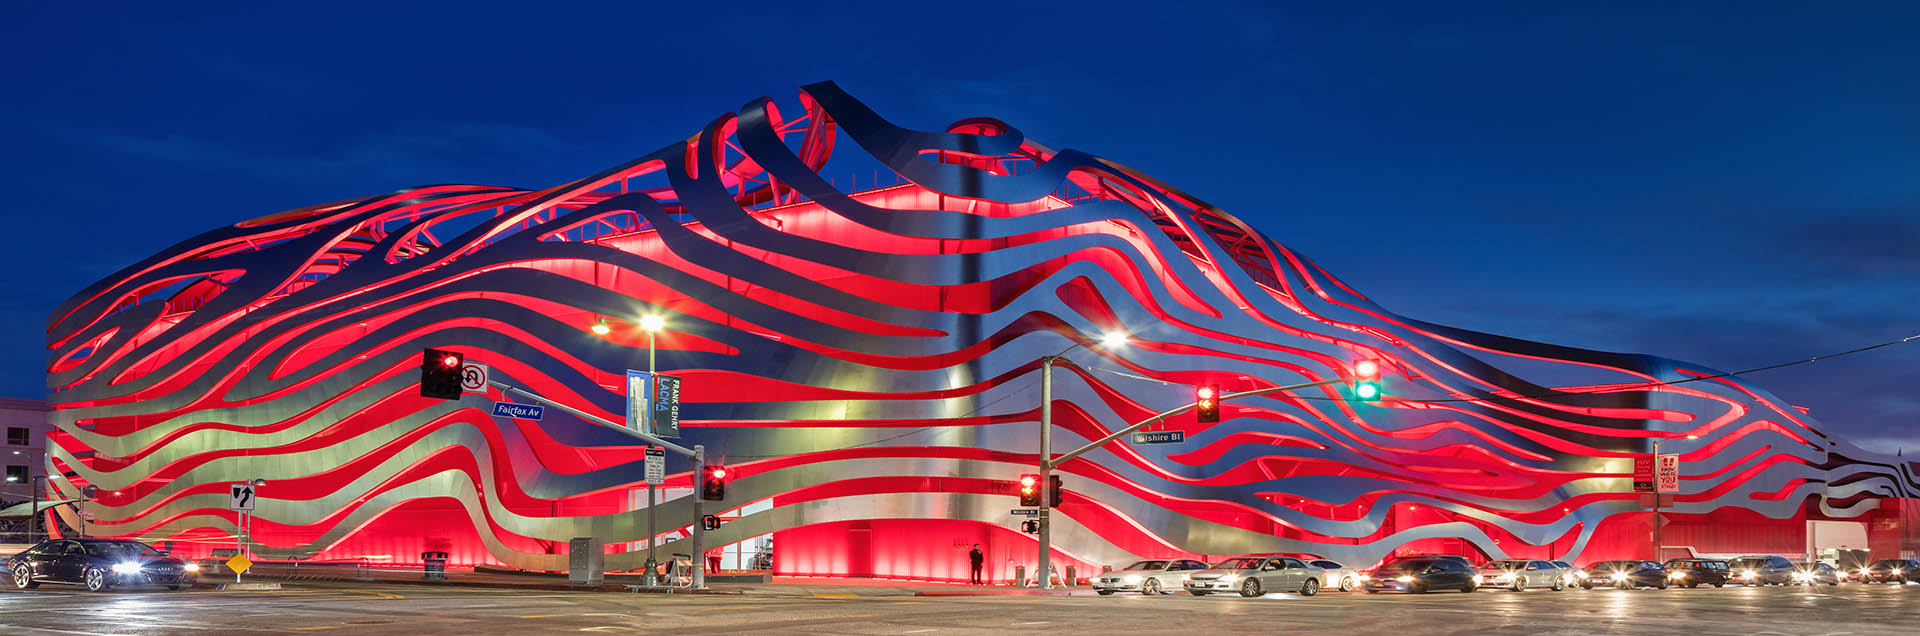 Petersen-Automotive-Museum.jpg